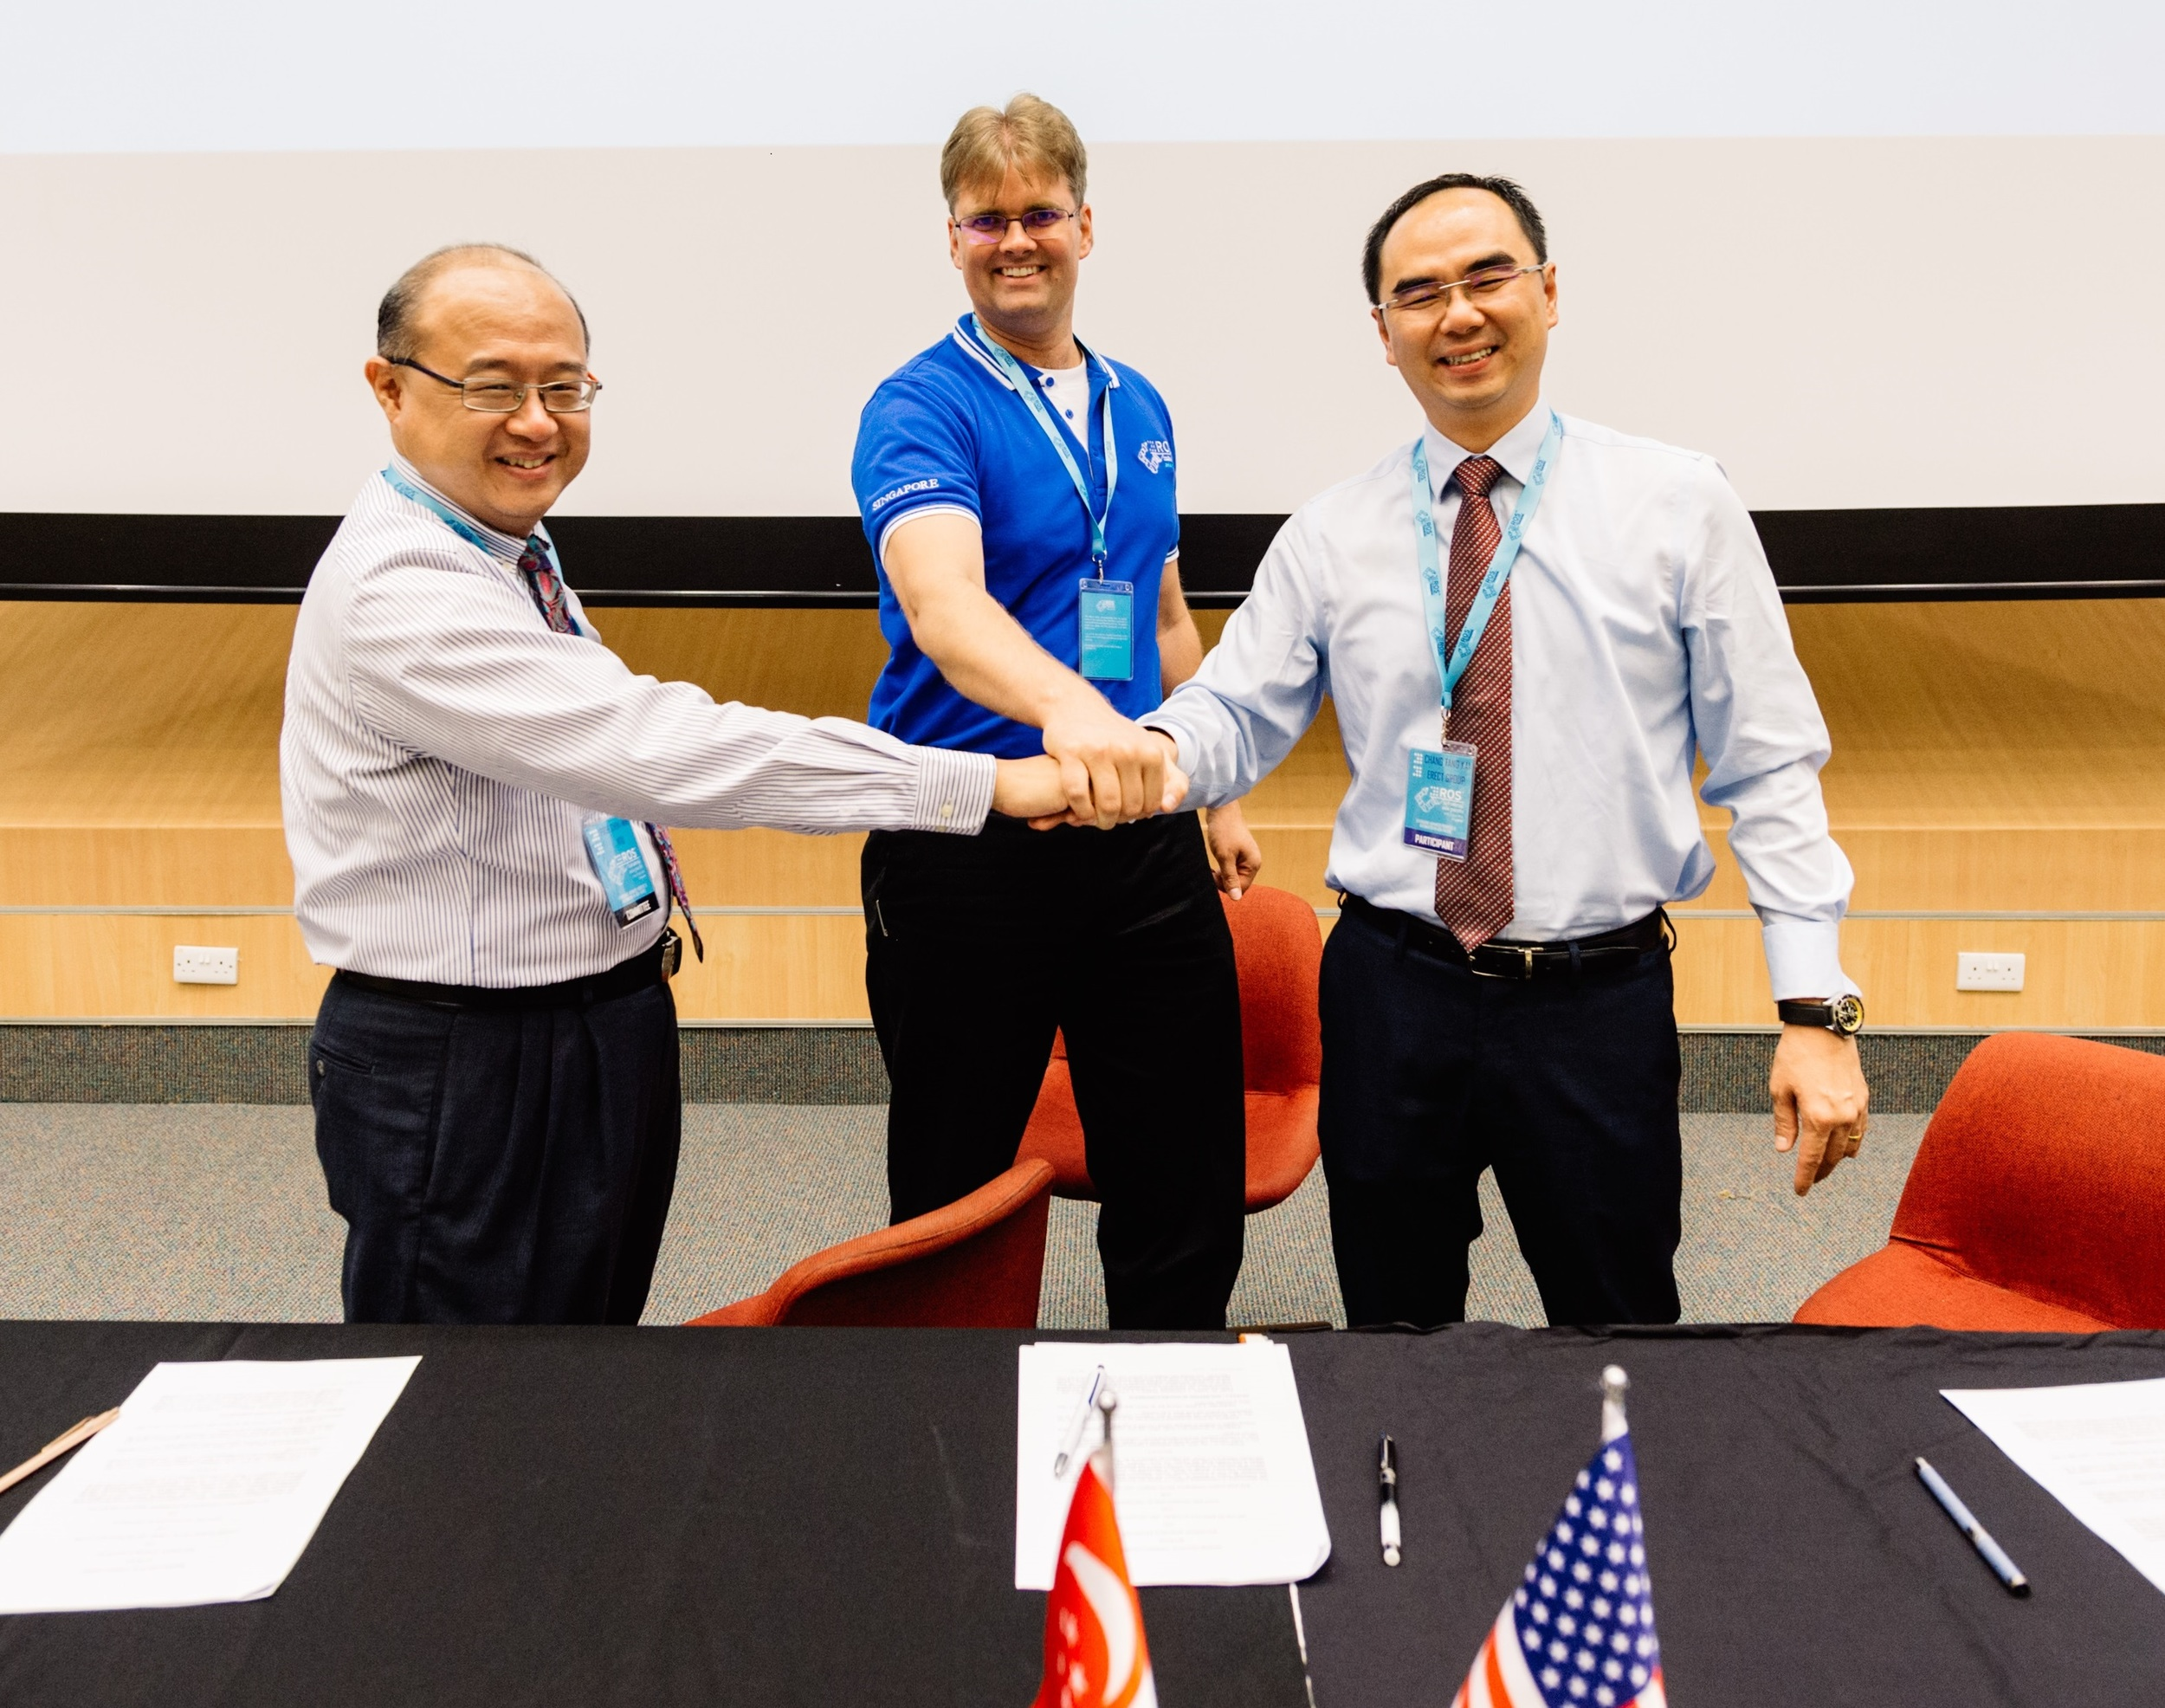 MOU Signing ceremony represented (from left): Prof Chen I-Ming (NTU-MAE), Paul Hvass (SWRI), Dr. DavidLow (CEO, ARTC)